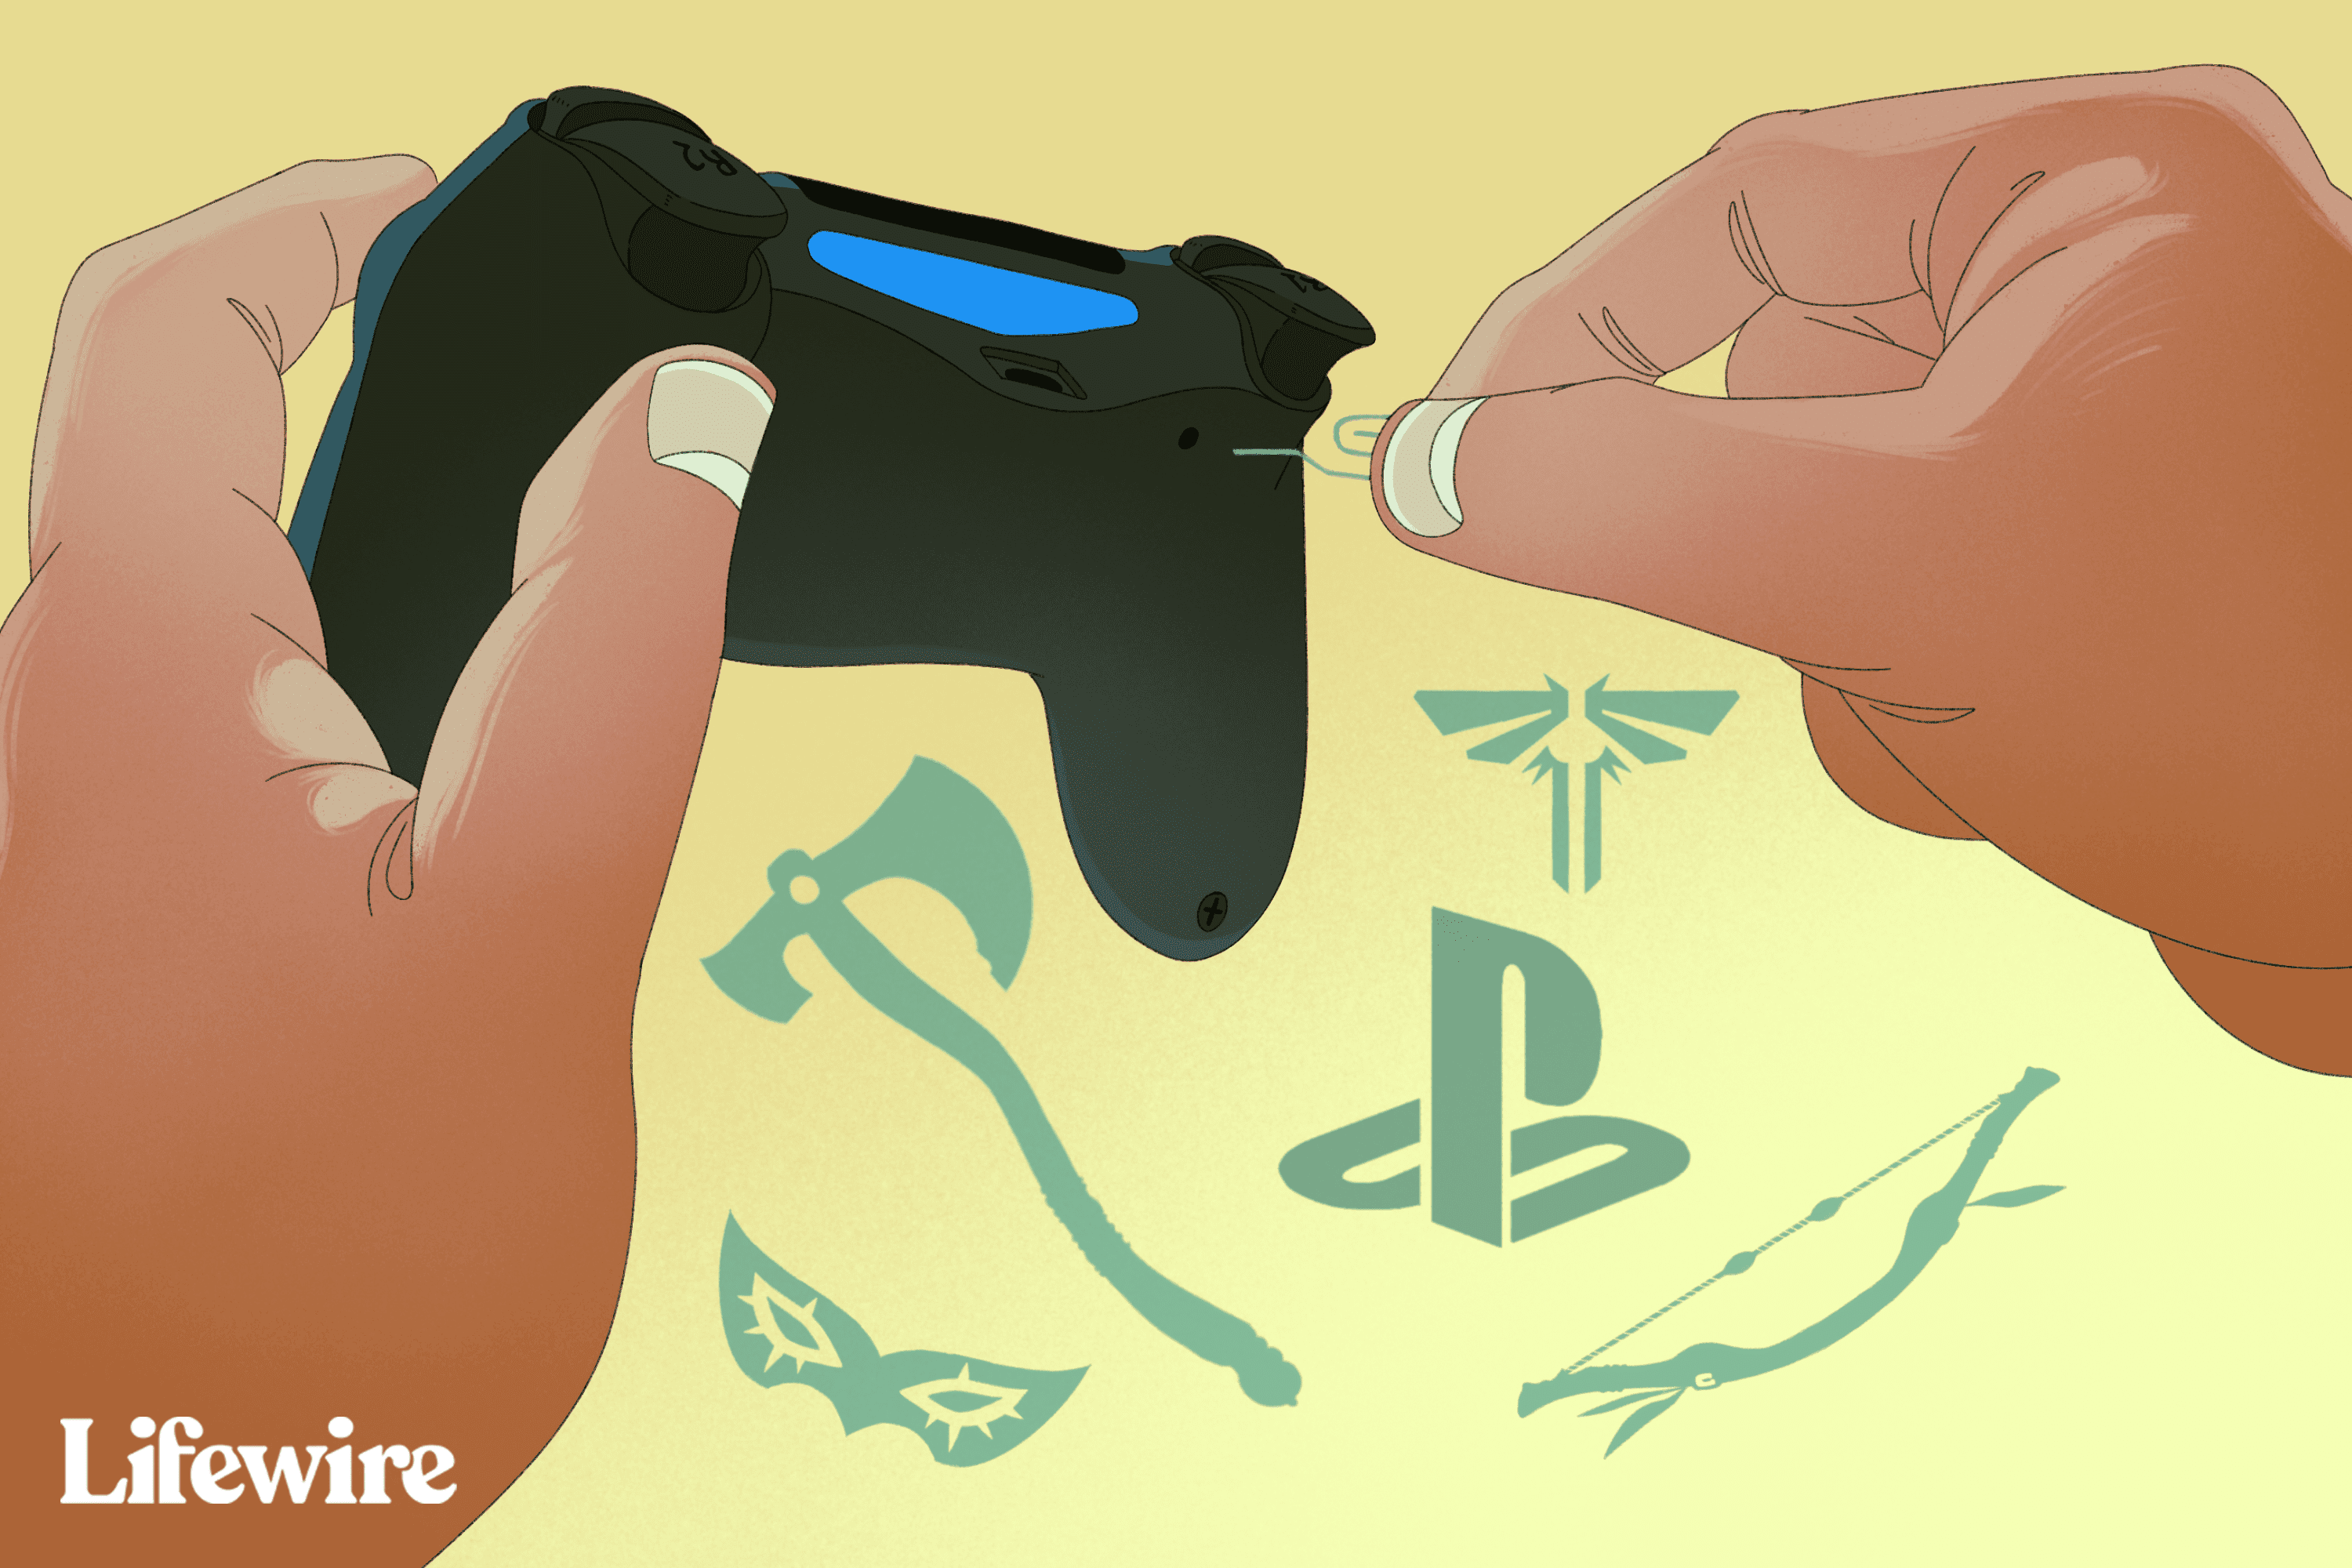 Person resetting a PlayStation 4 controller with a paperclip